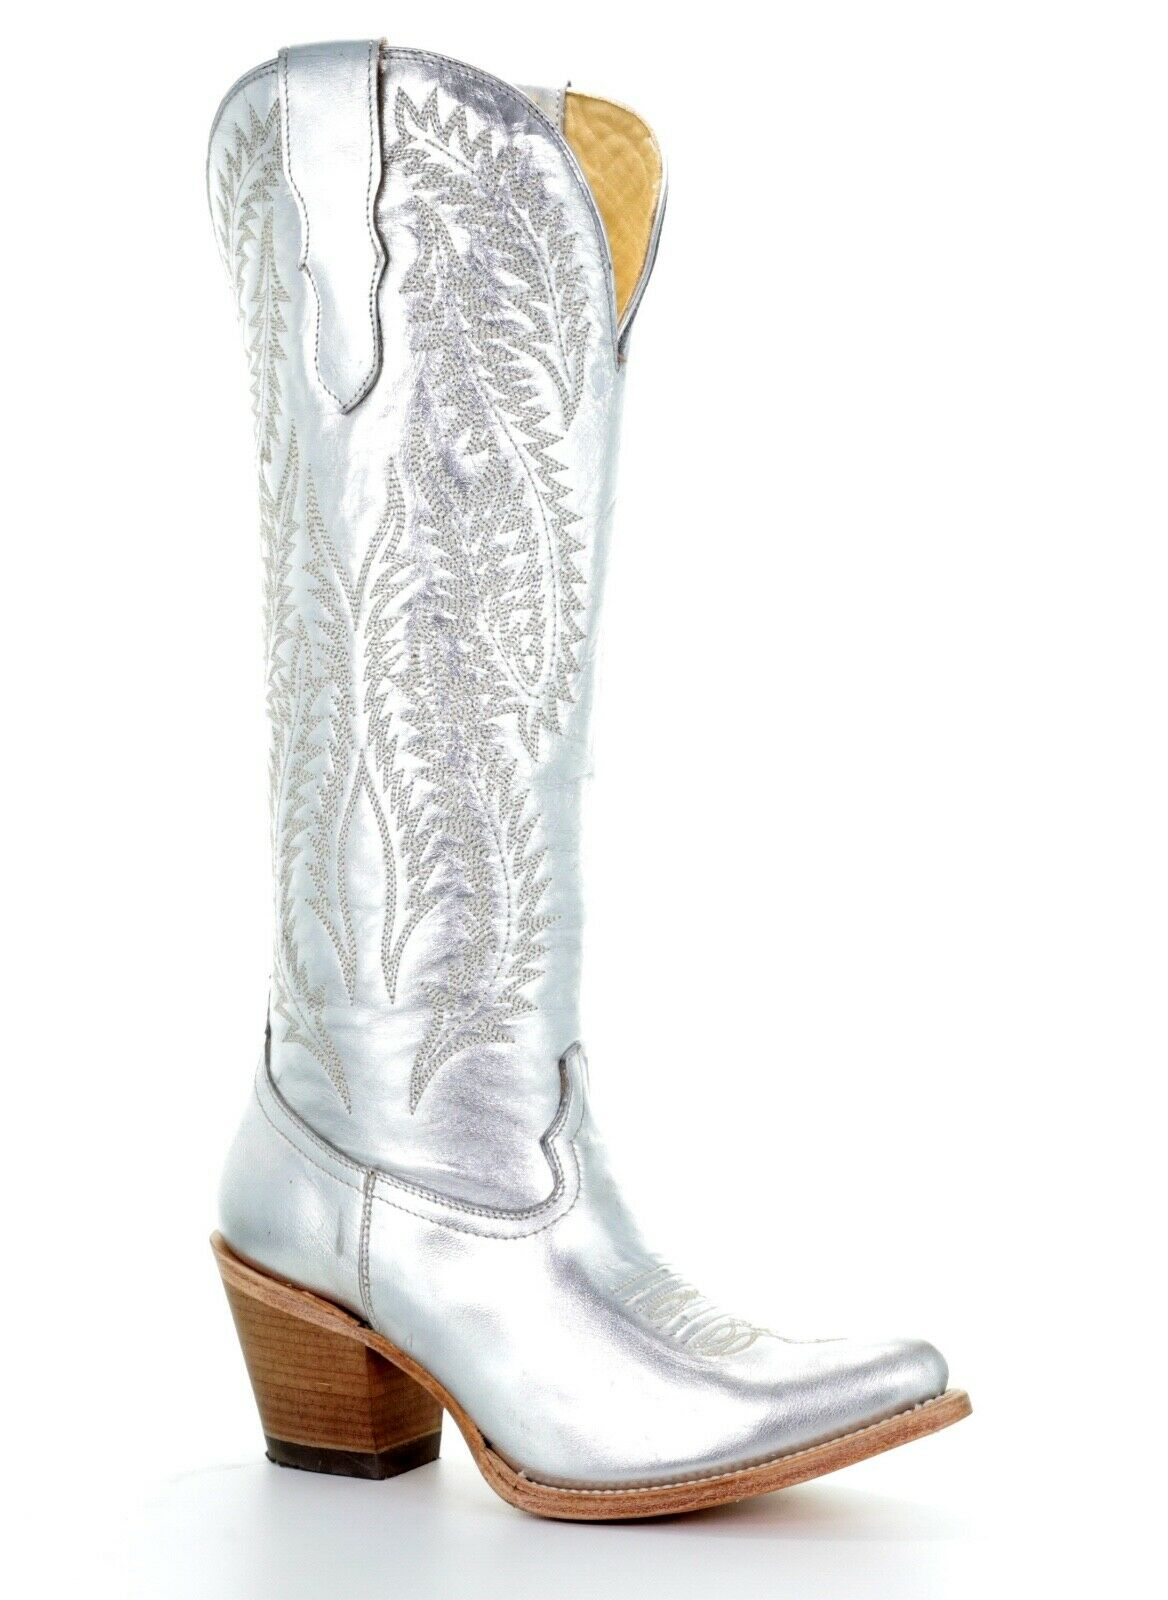 Corral Ladies Silver Metallic Embroidery Tall Knee-High Boots E1321